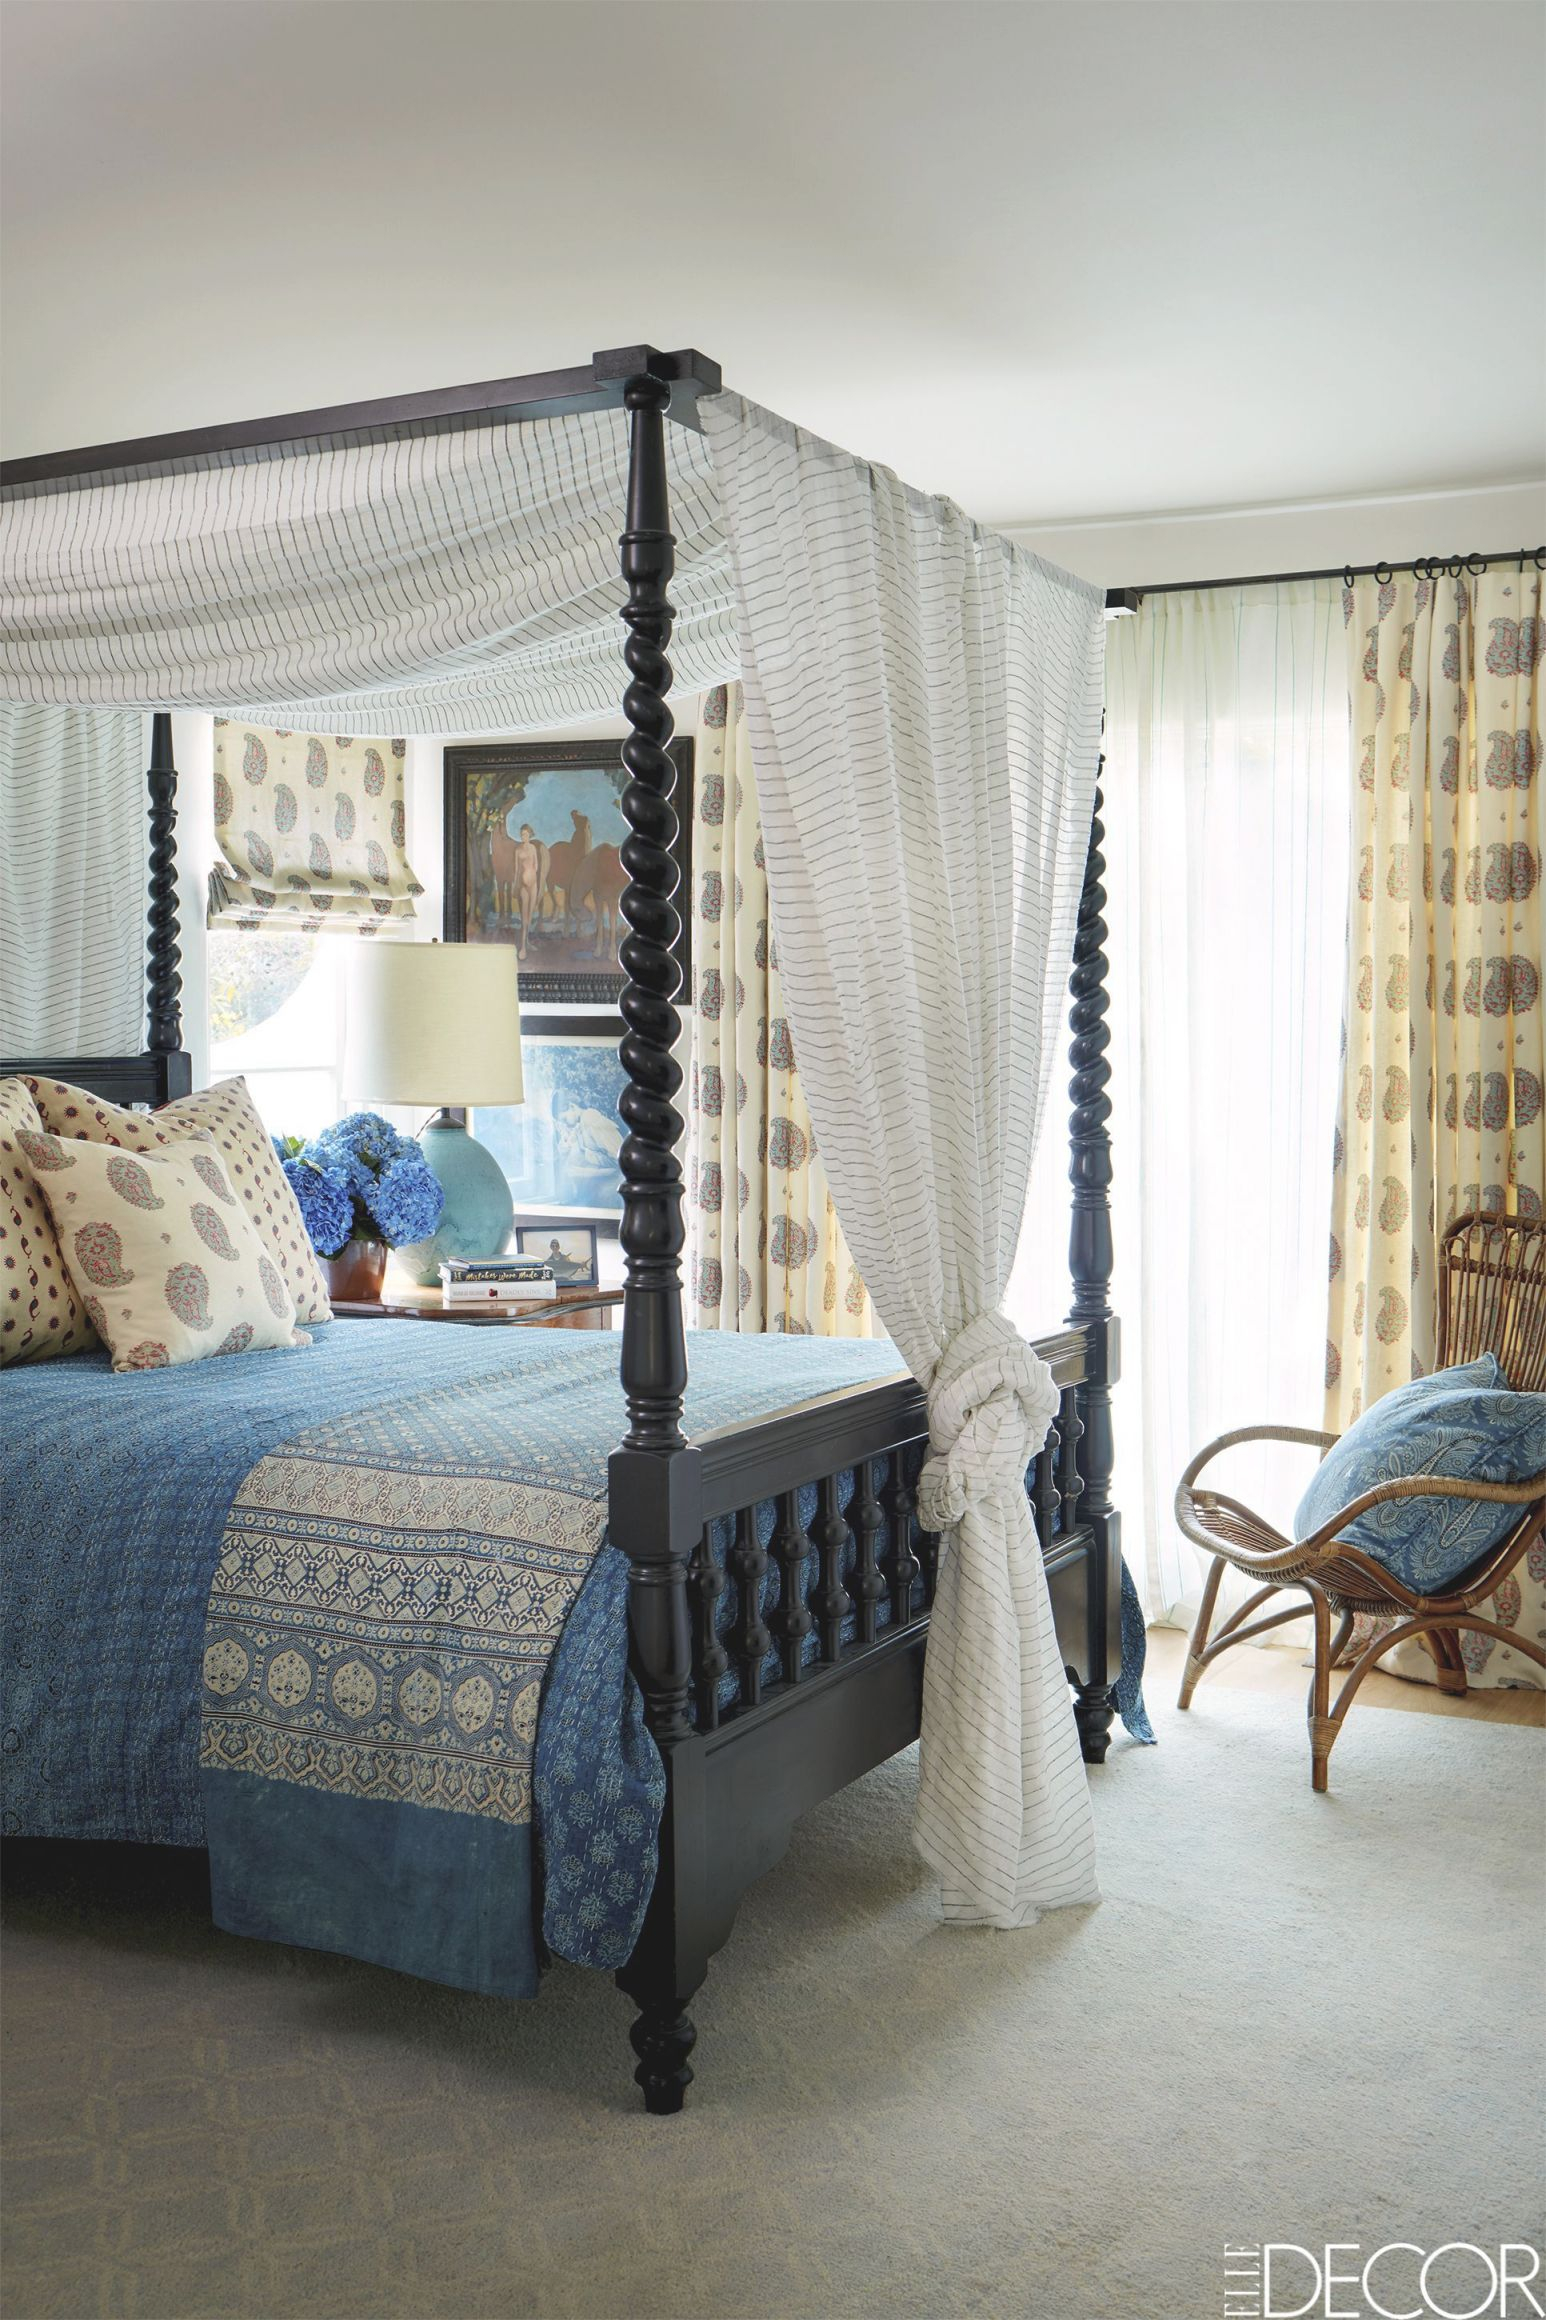 55 Small Bedroom Design Ideas – Decorating Tips For Small with Beautiful Decorative Ideas For Bedroom